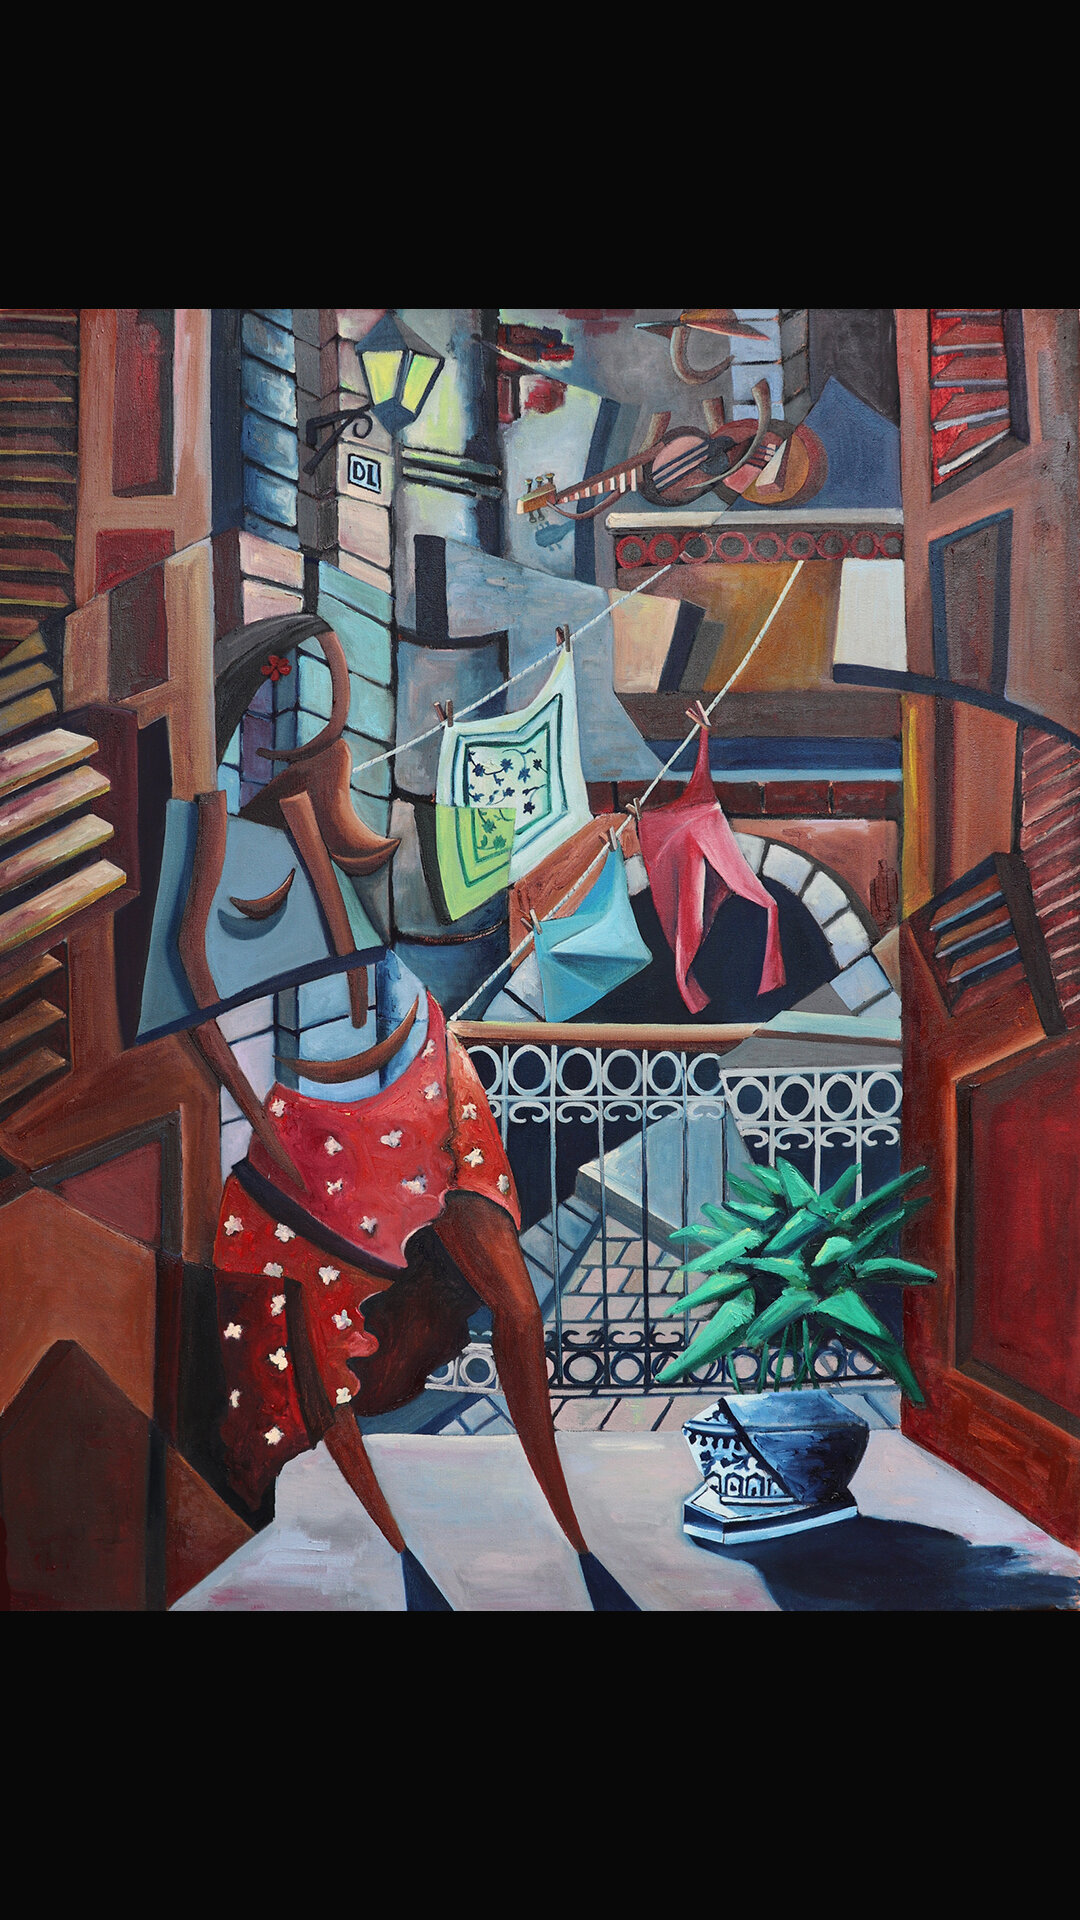 Derwin Leiva_Amor de Balcones_ 2019, Oil on Canvas, 91 x 76 cm  .jpg